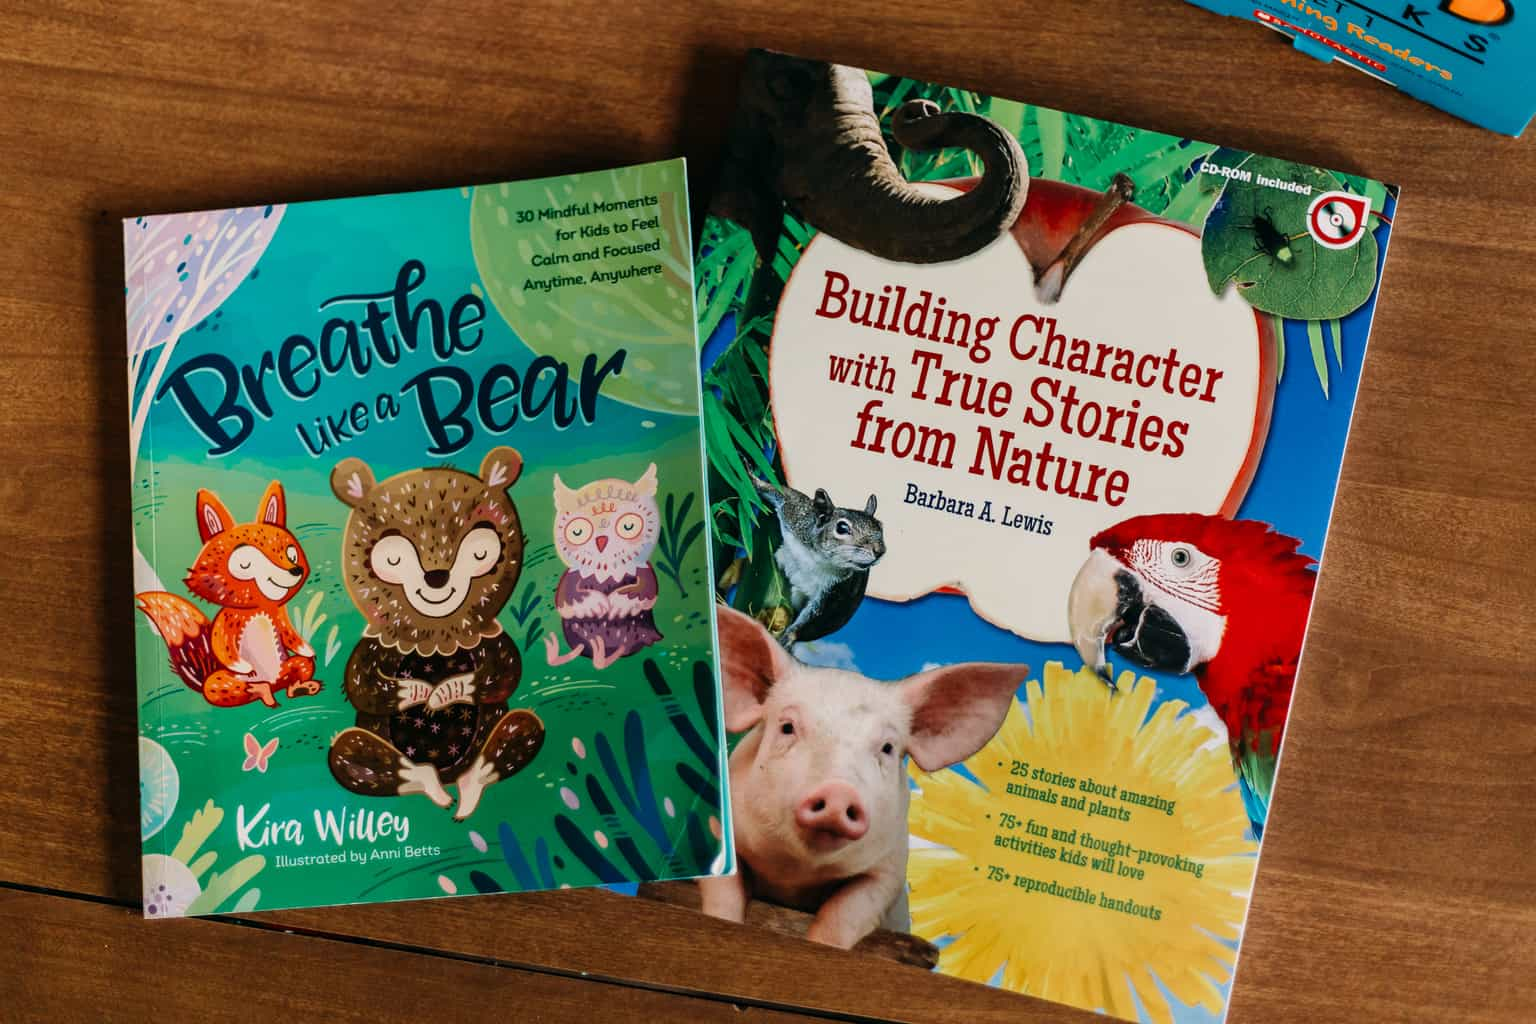 Kids books: Breathe Like a Bear and Building Character with True Stories from Nature. Secular mindfulness and character building books.